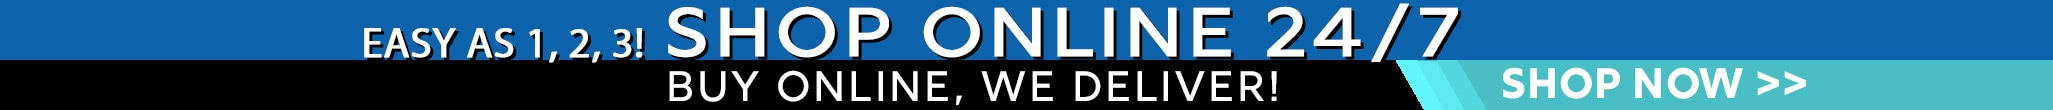 Shop Online Express Checkout at Larry H Miller Avondale Dodge